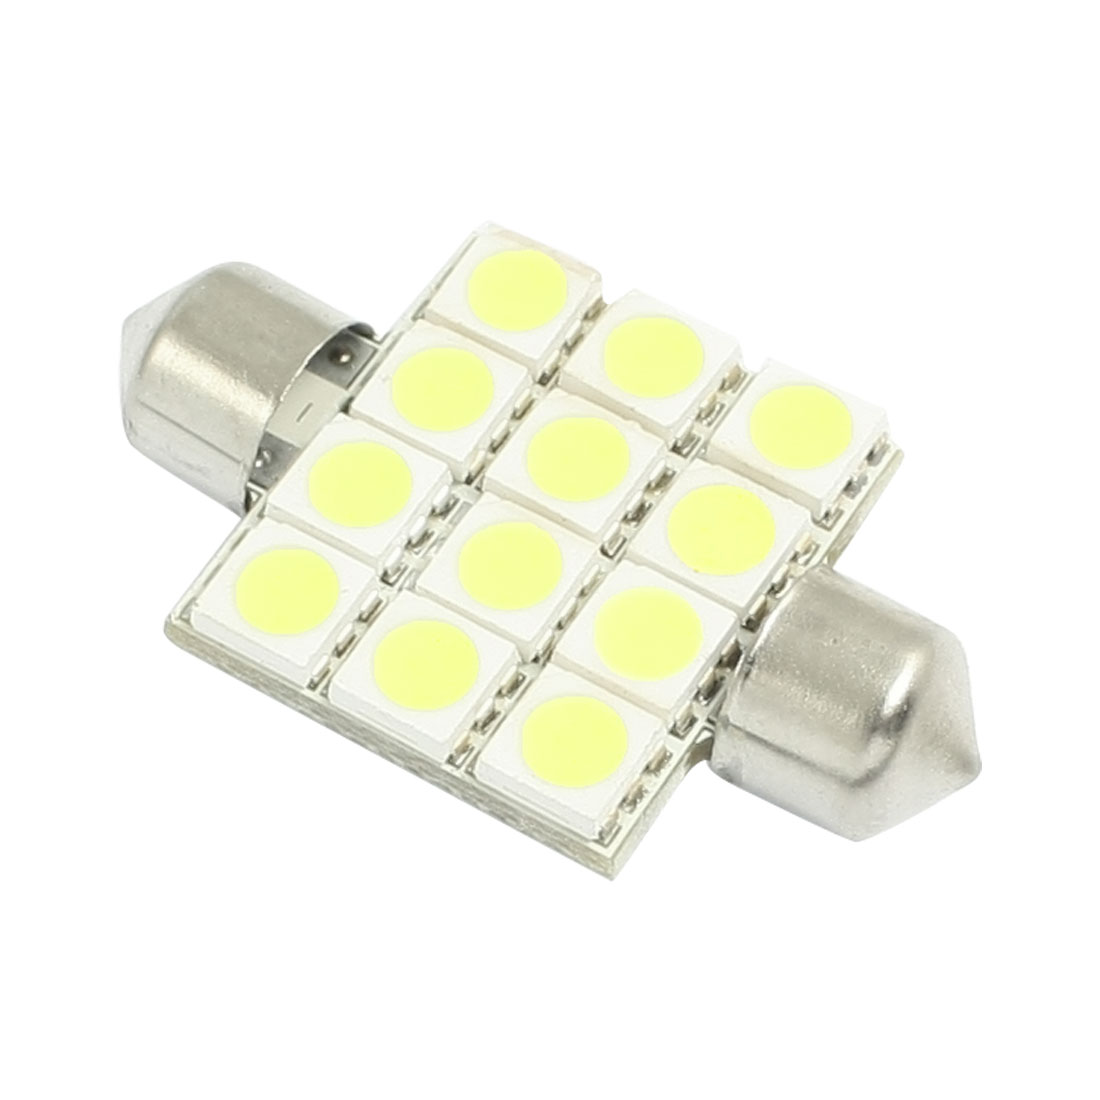 Car 5050 12 SMD White Dome Map Festoon LED Light Lamp Bulb 41mm DC 12V internal